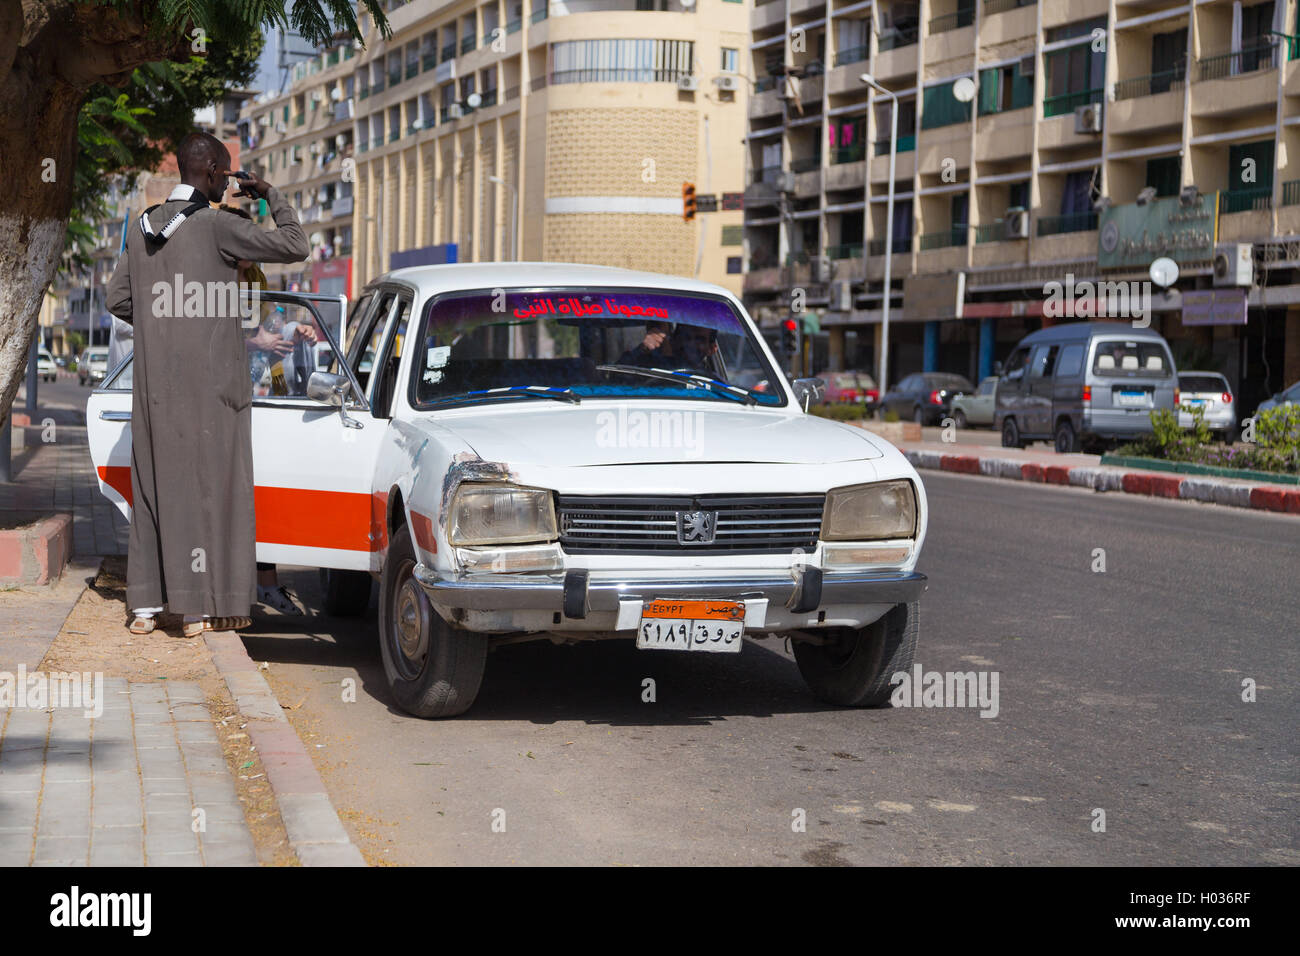 Aswan Egypt February 5 2016 People Entering Old Peugeot 504